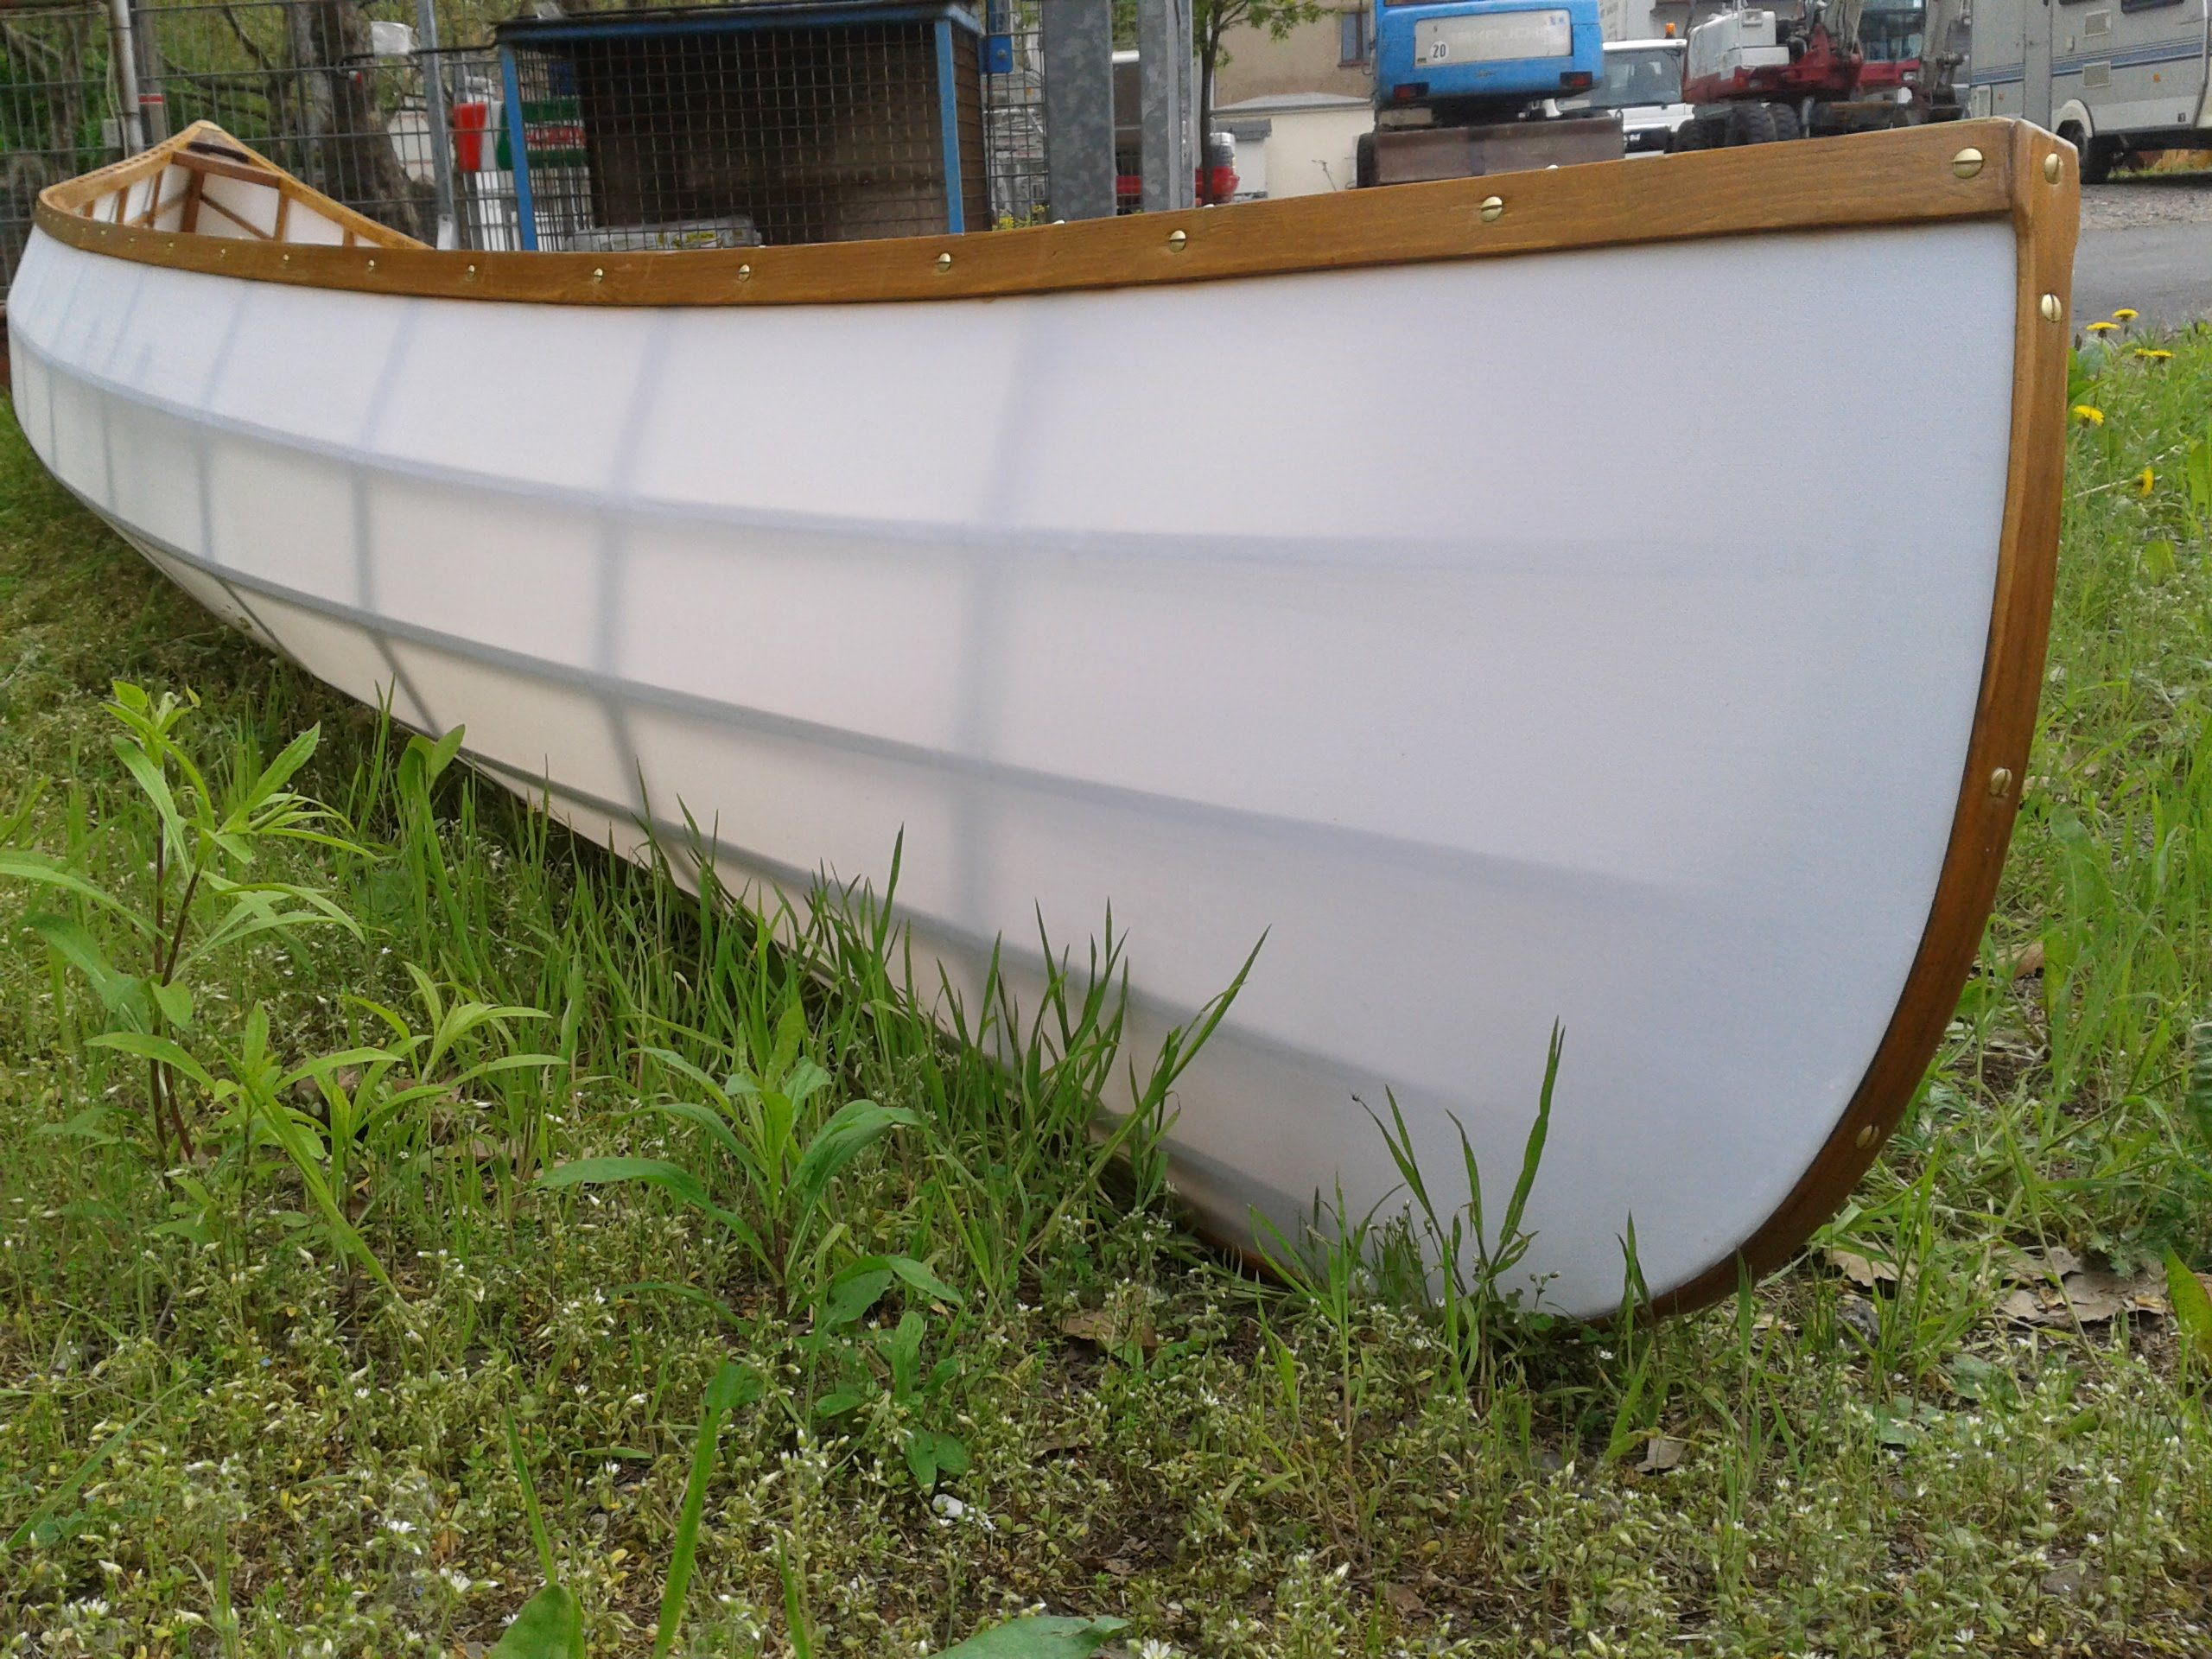 Pin by ian t. nordeck on Boat build | Pinterest | Boat building